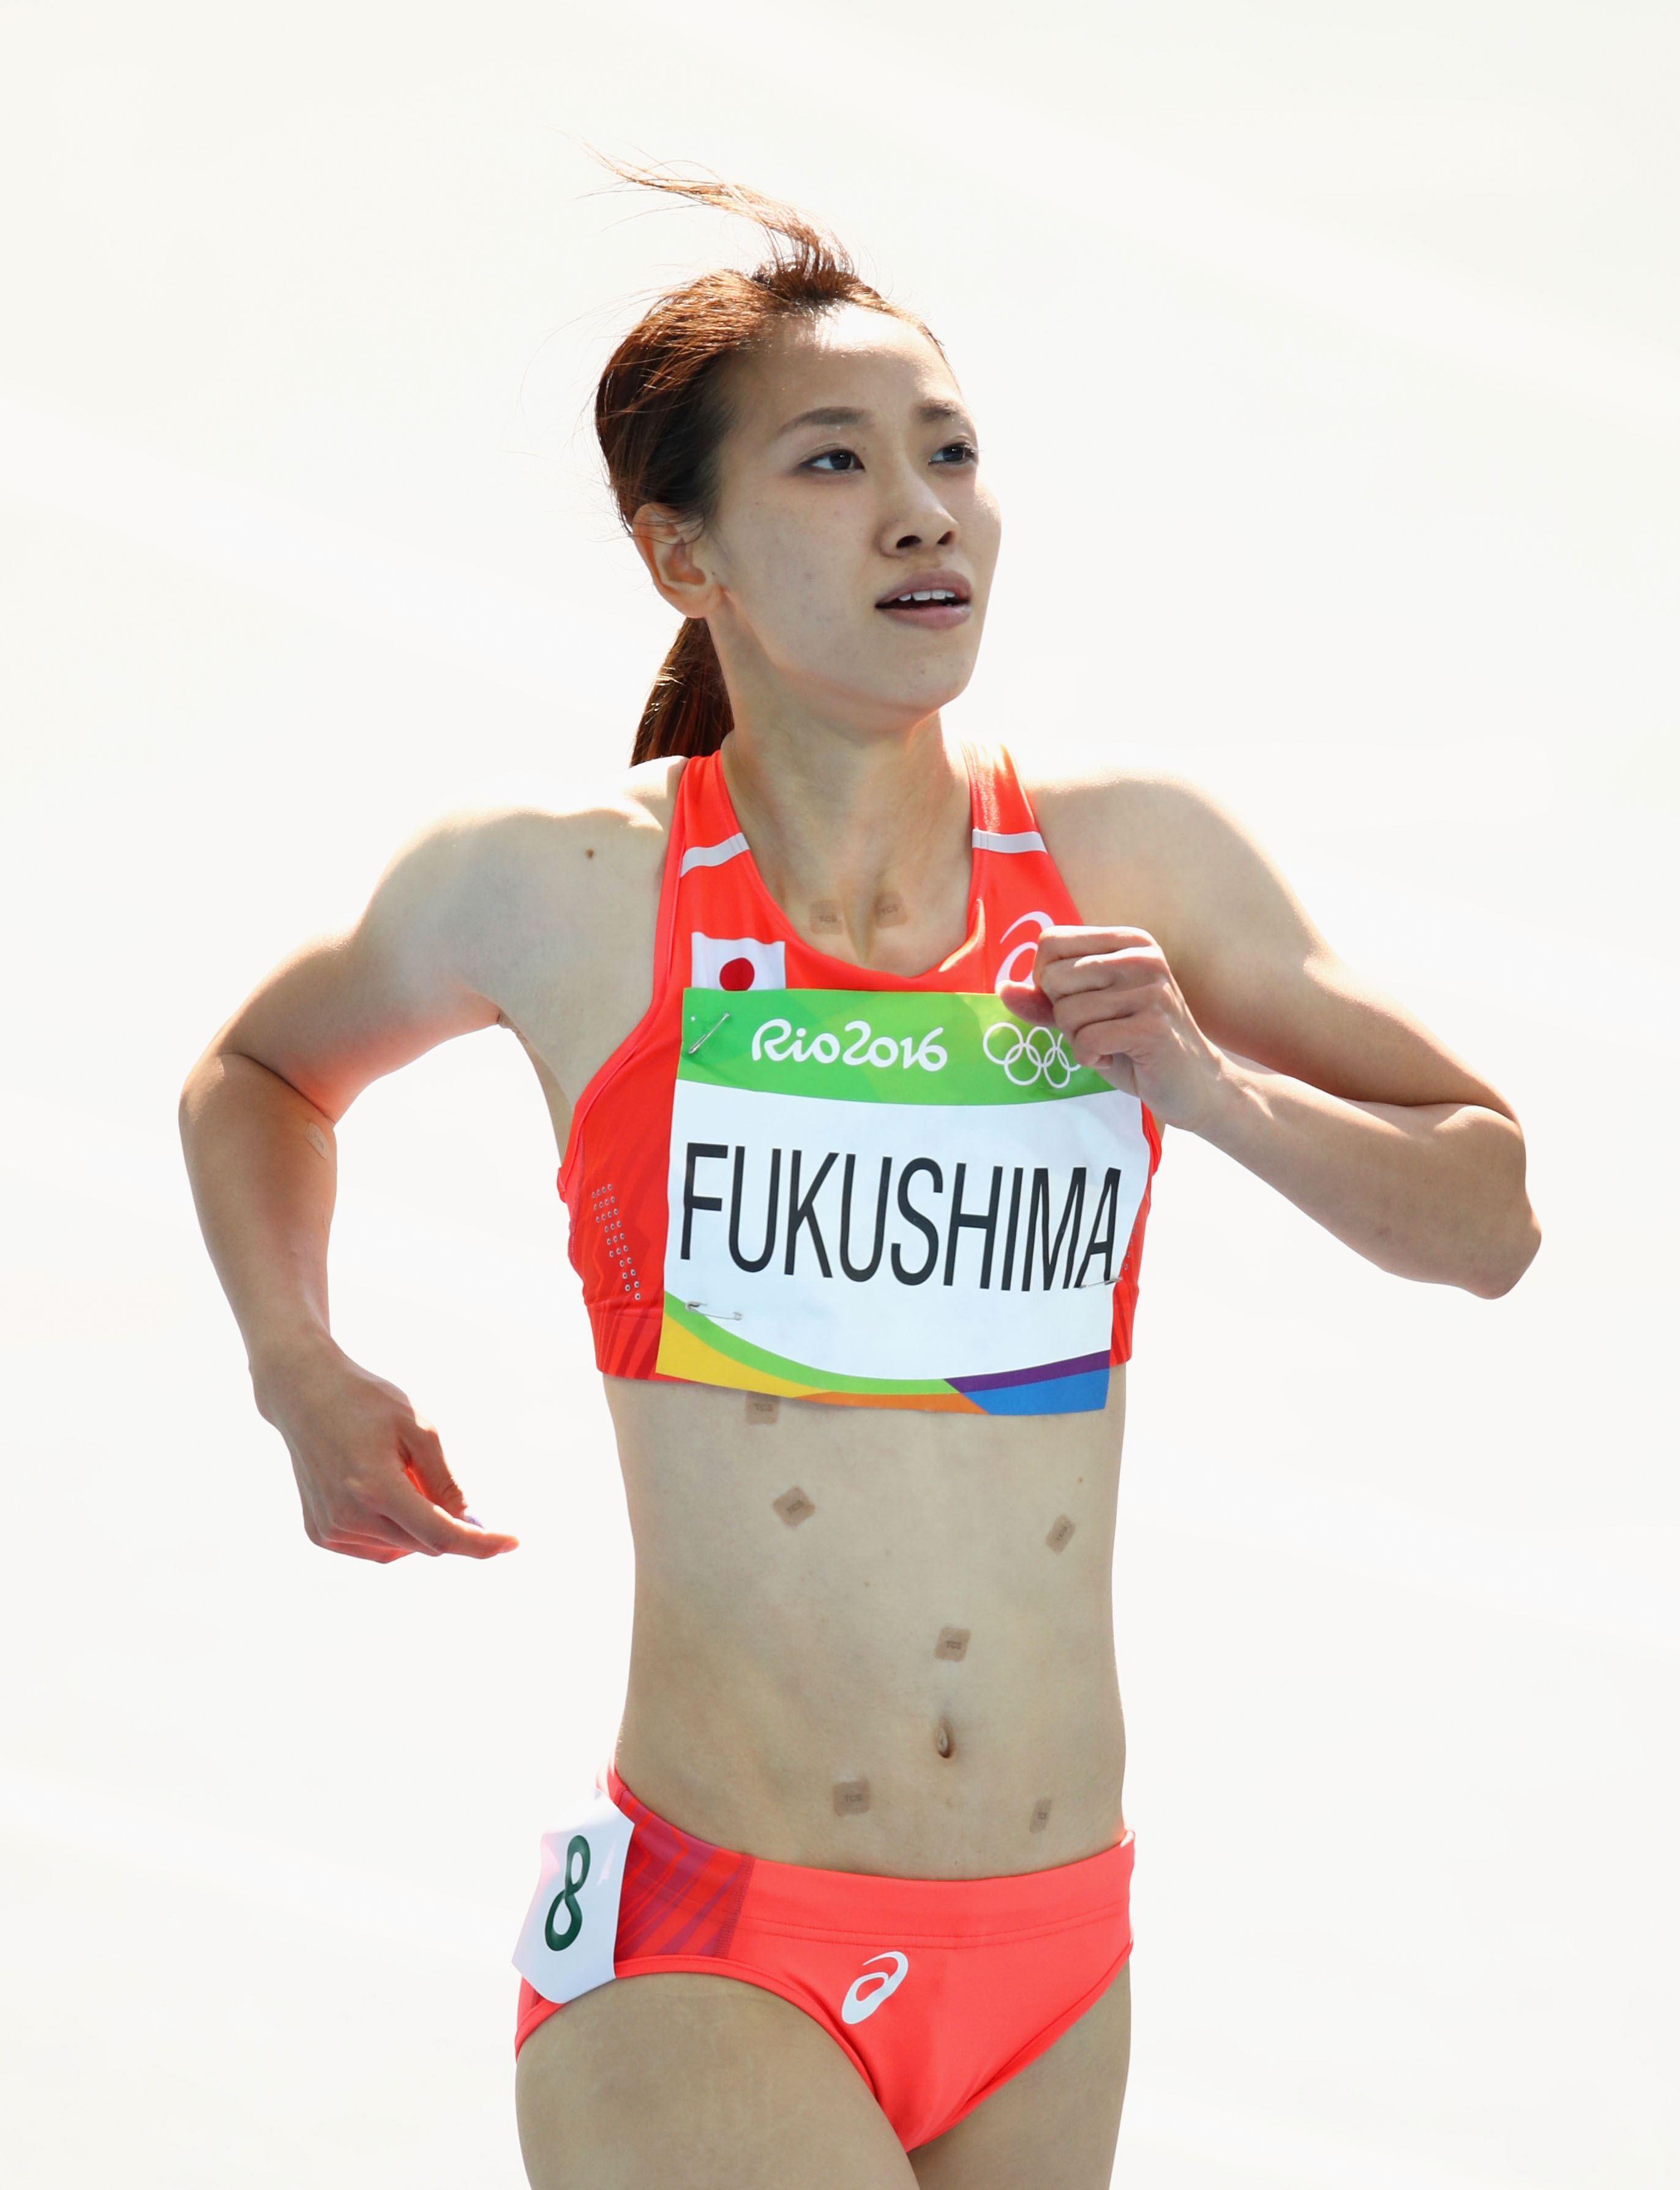 GettyImages 589705648 Heres Why Japans Chisato Fukushima Wore Patches While Running In Rio